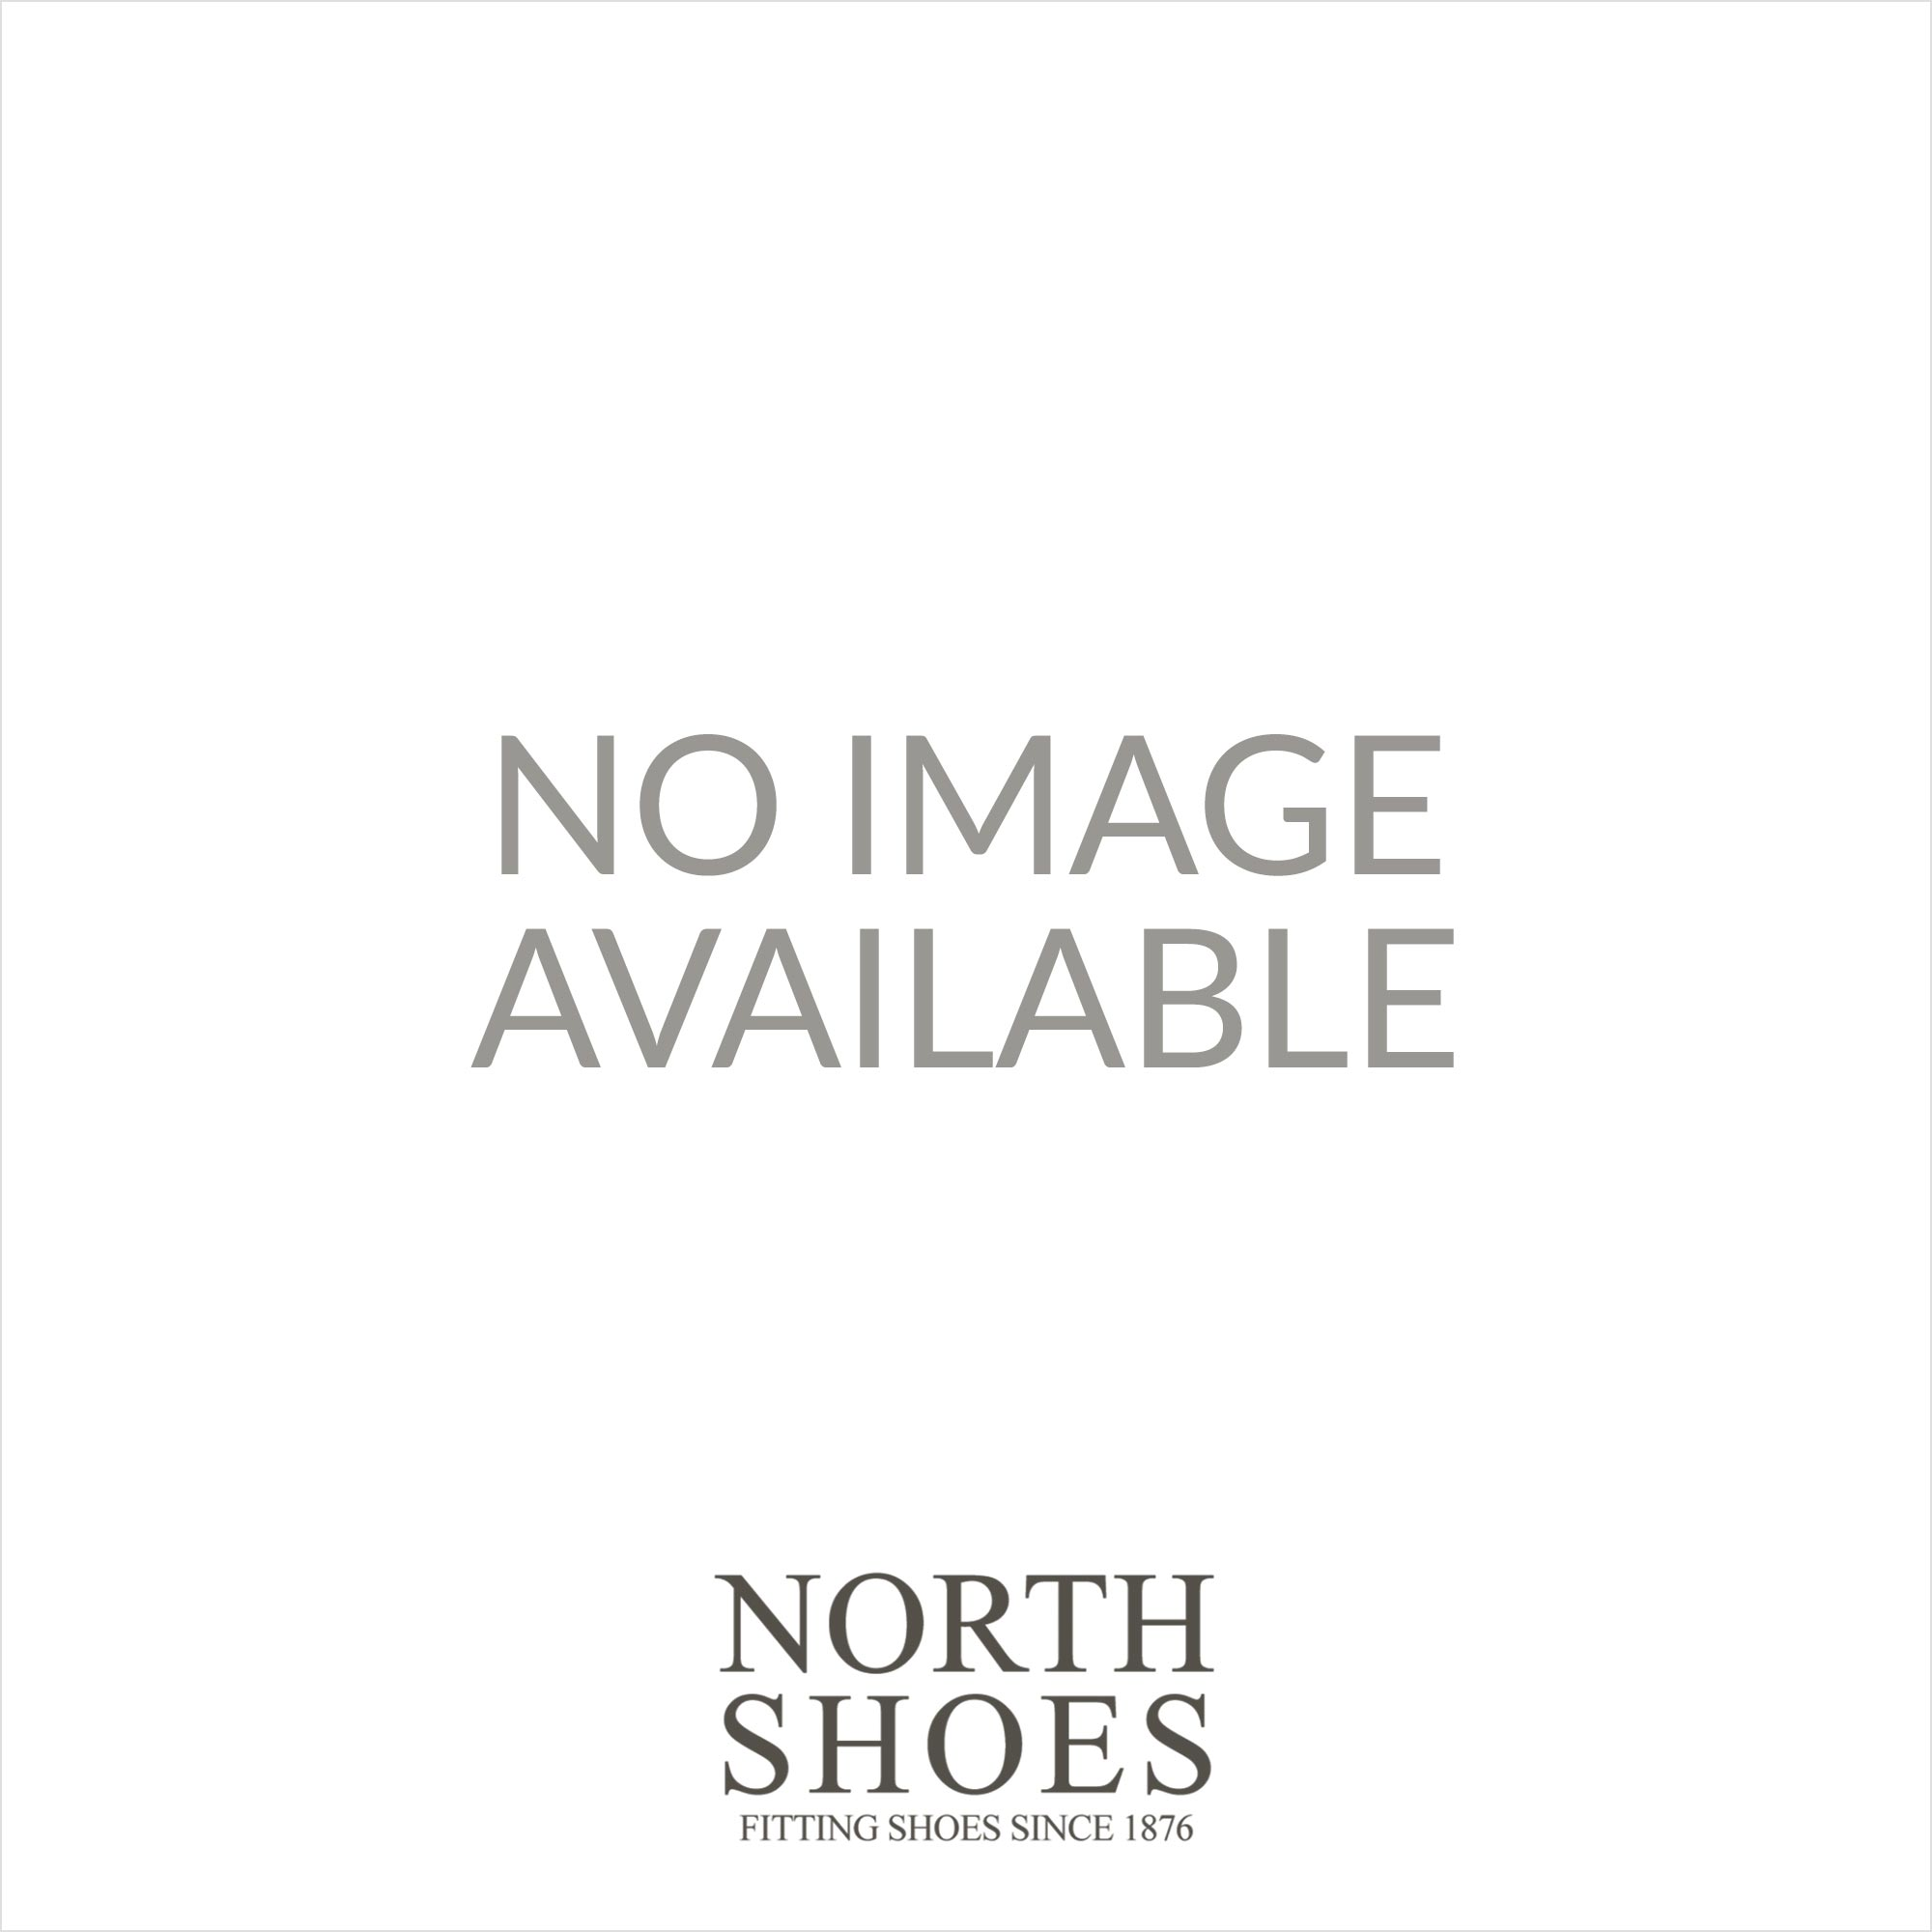 d1f60ca3fed0 Clarks Un Reisel Mara Black Leather Womens T Bar Strappy Sandal - Clarks  from North Shoes UK